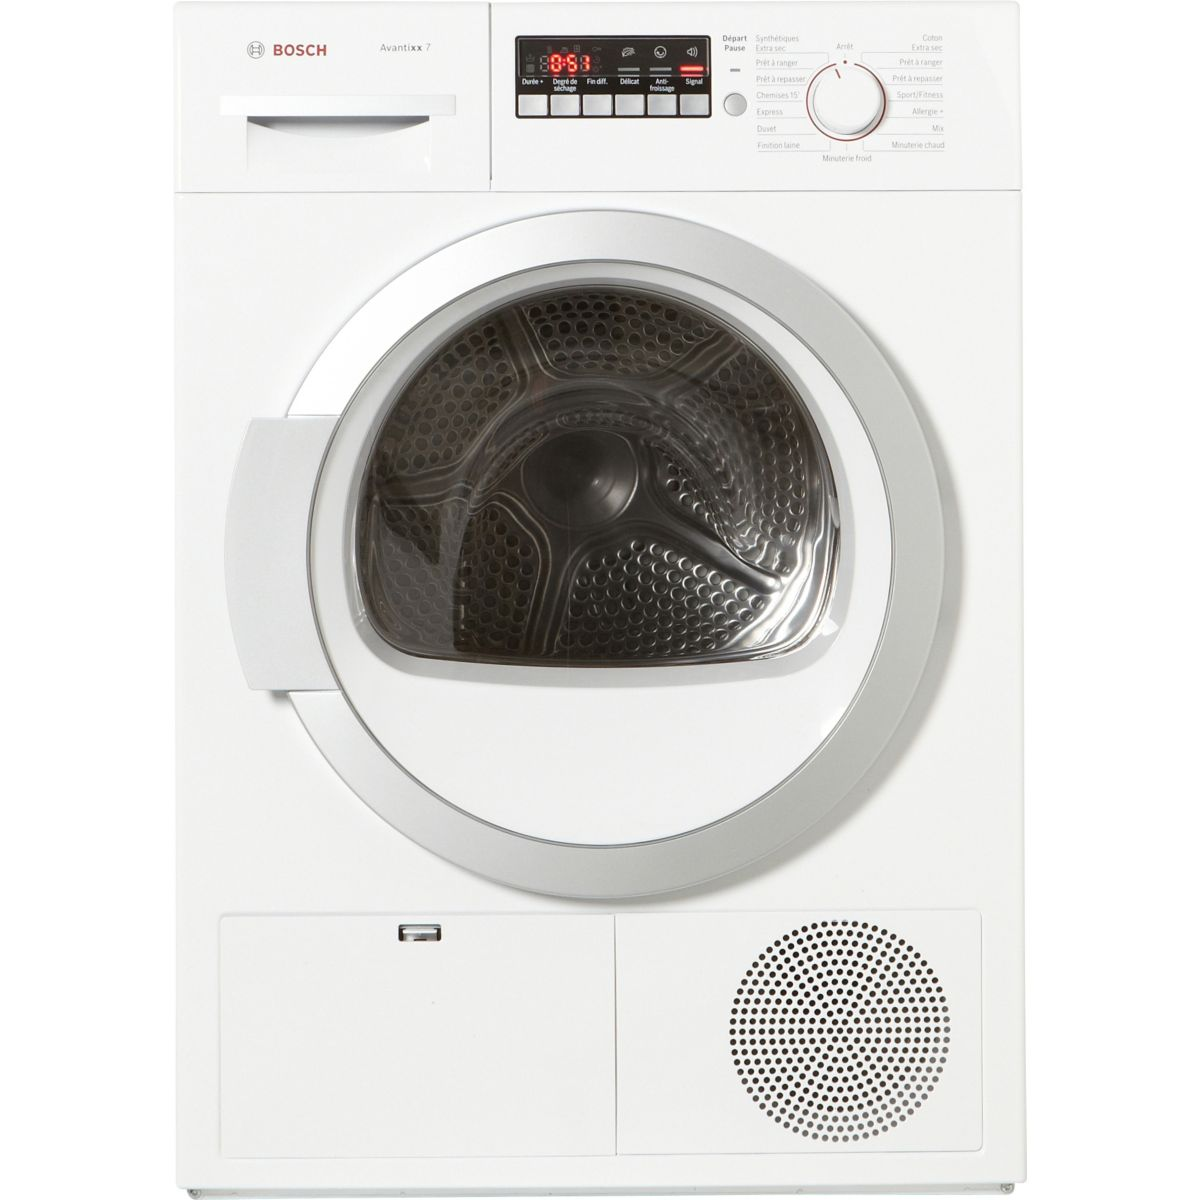 bosch wtb86200ff s che linge frontal condensation 7 kg comparer avec. Black Bedroom Furniture Sets. Home Design Ideas